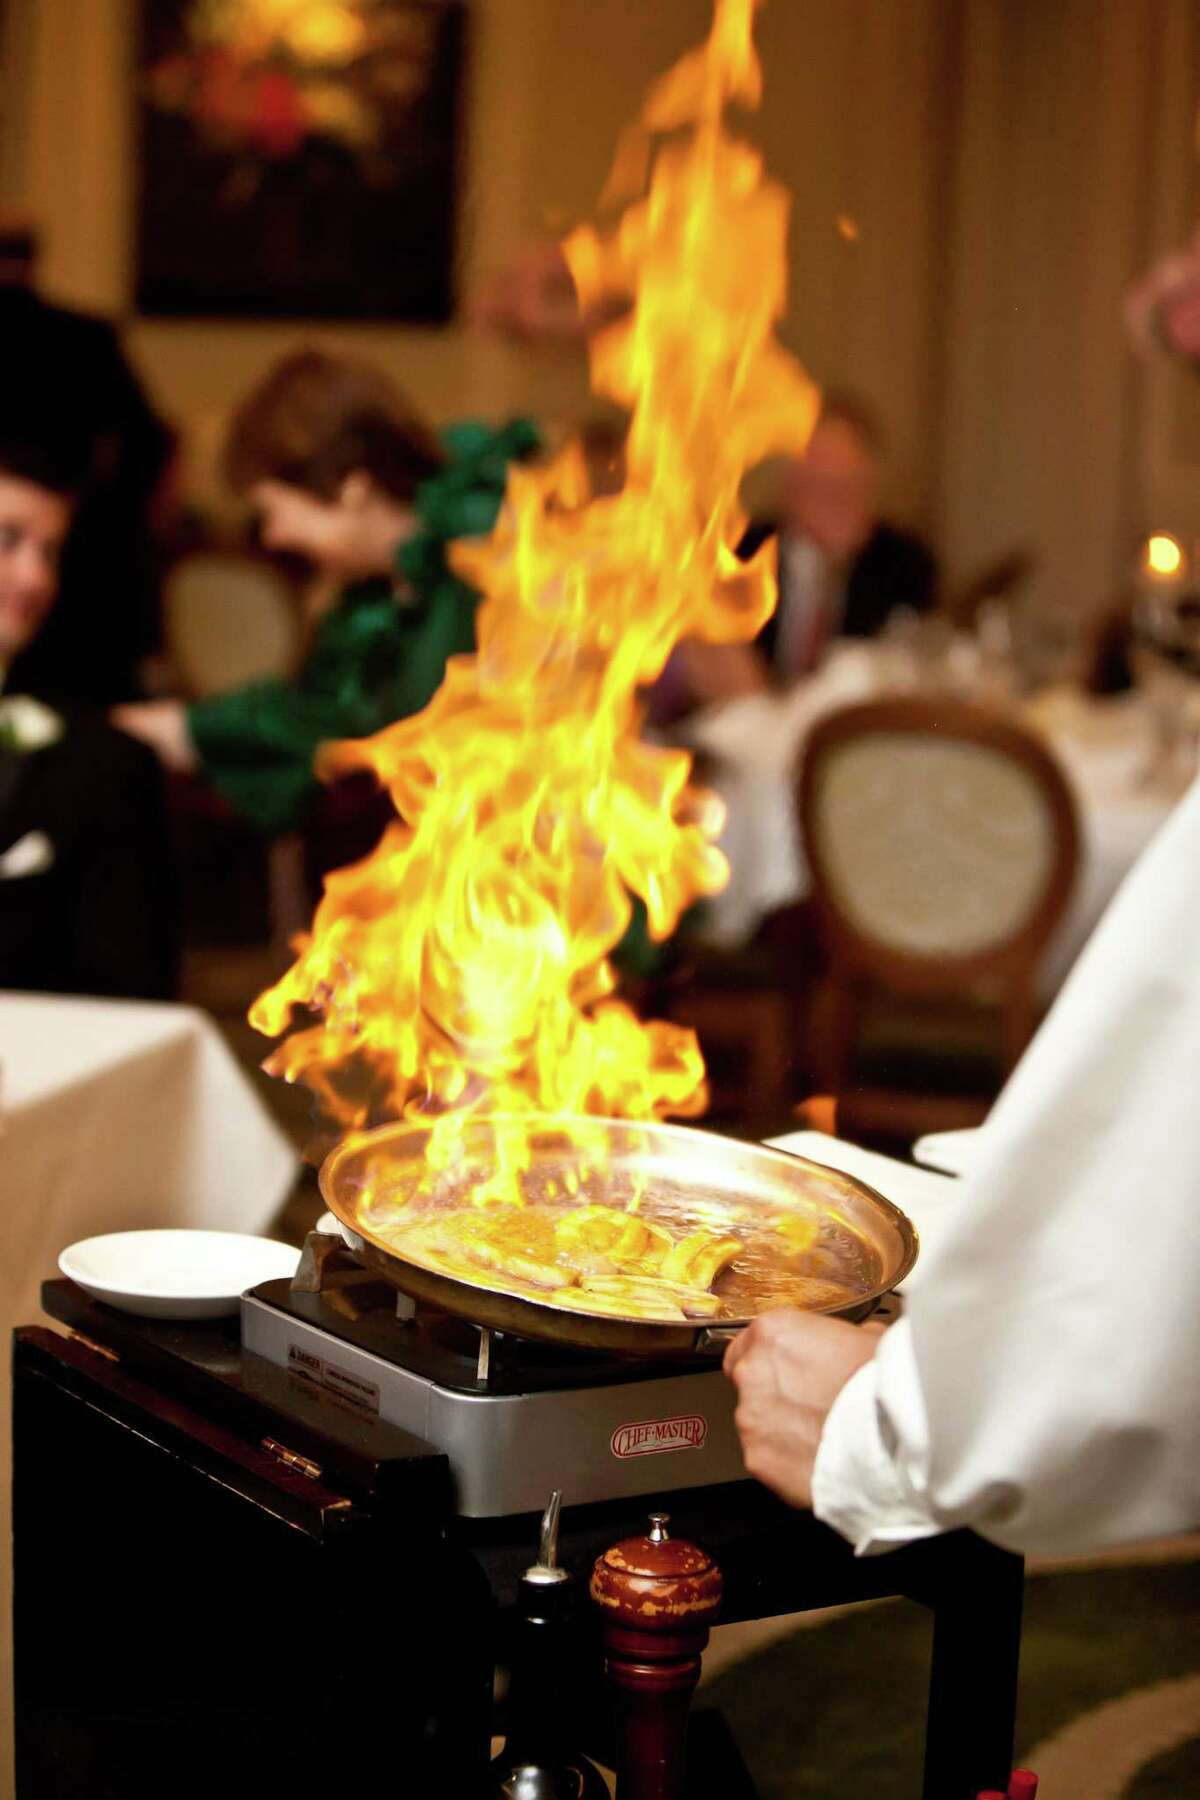 Service captain Fred Wynn Sr. prepares traditional Bananas Foster at Brennan's of Houston.